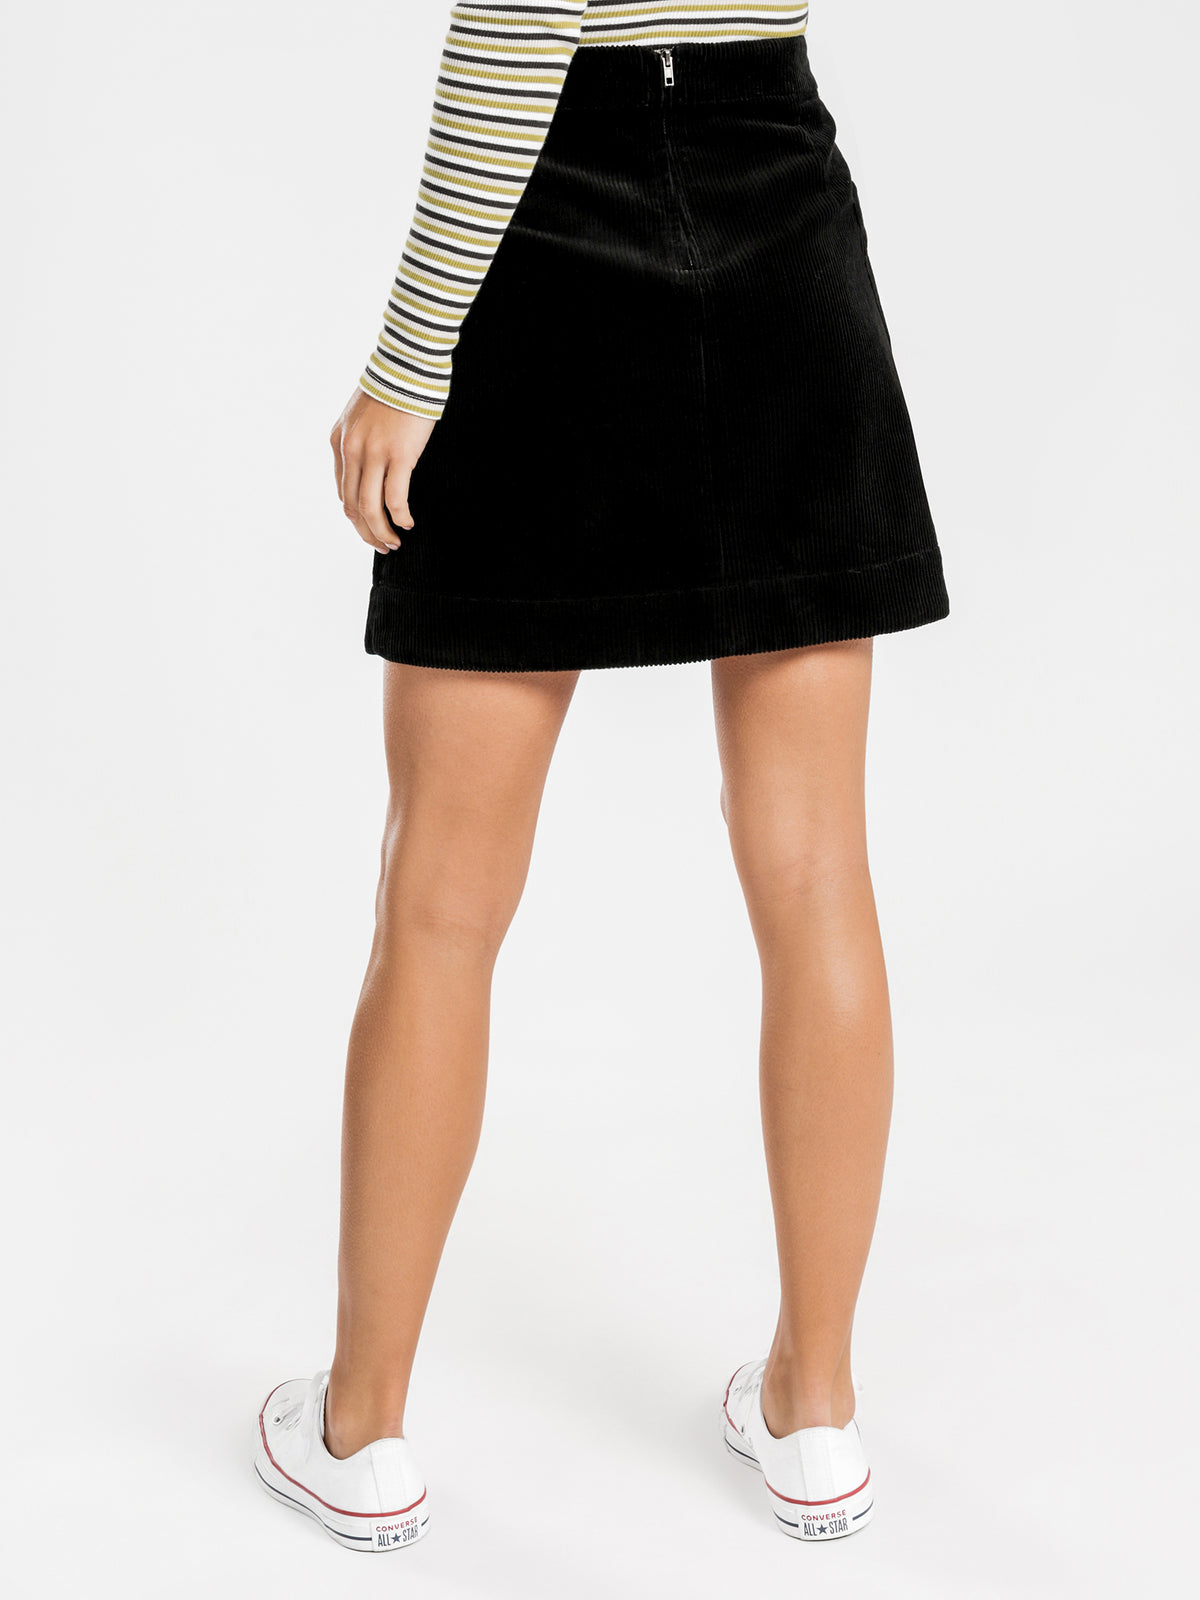 Corduroy Mini Skirt in Black